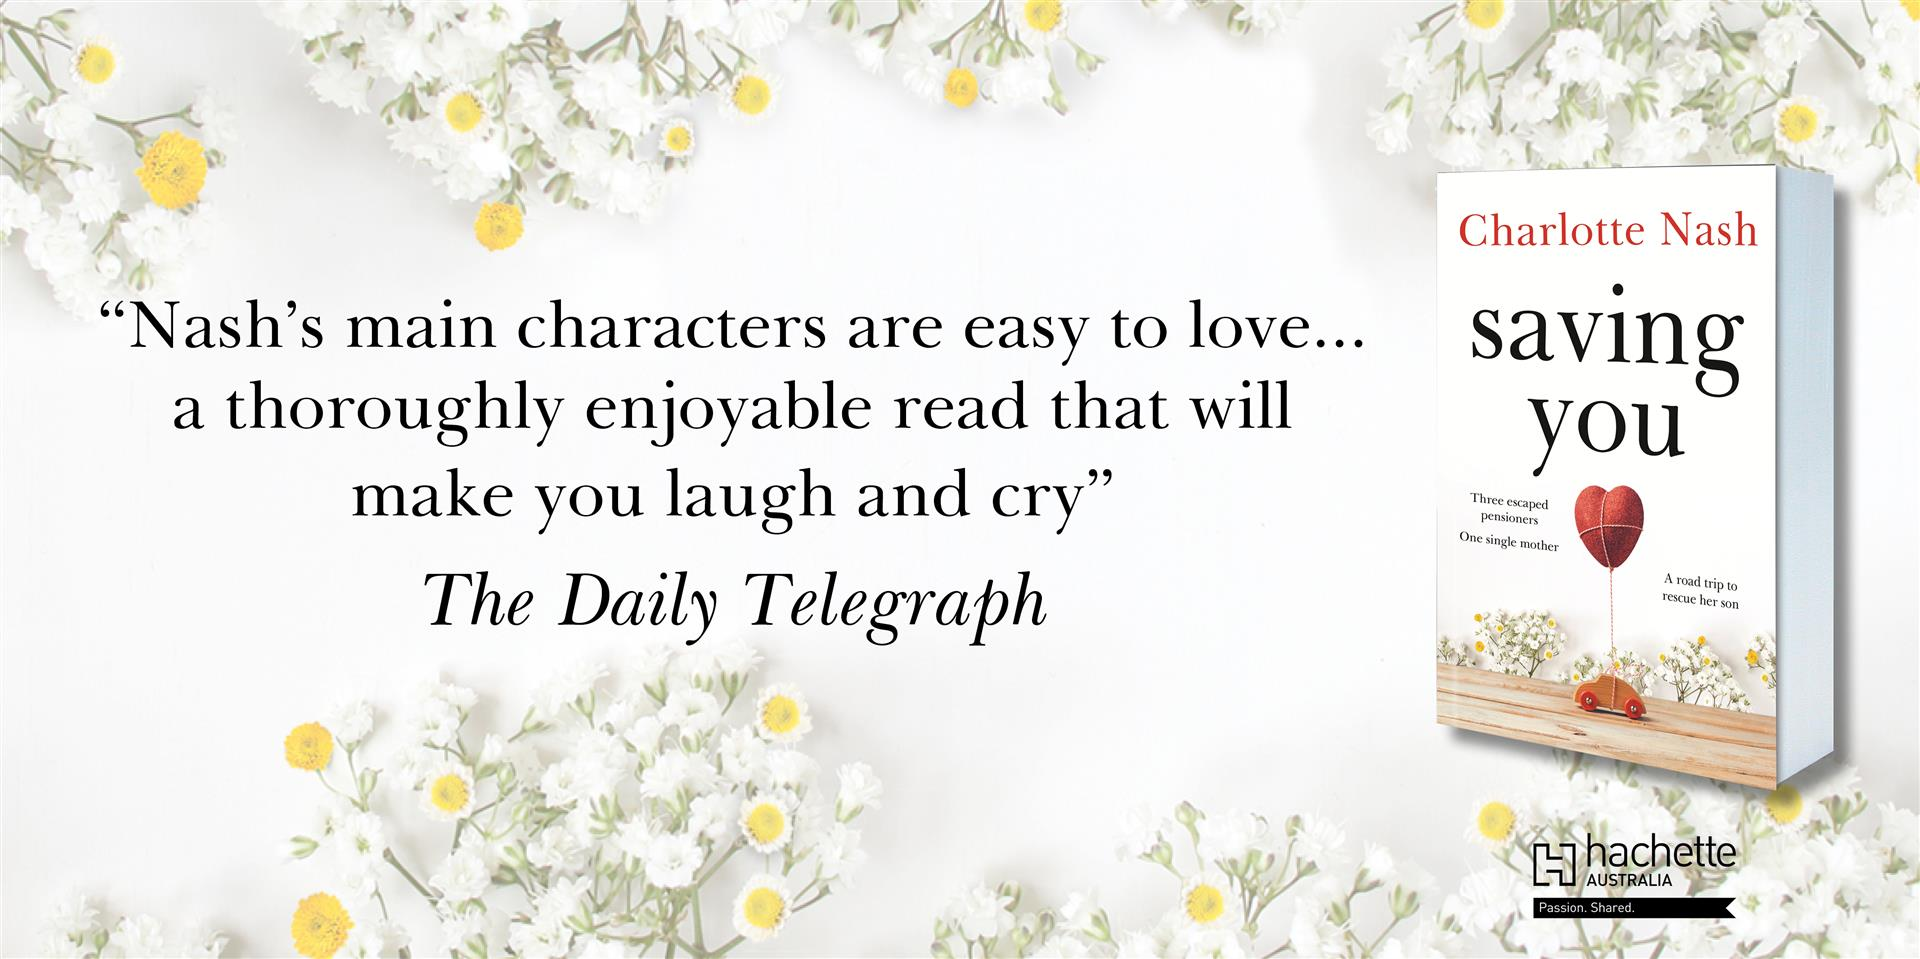 Daily Telegraph quote card (Large).jpg